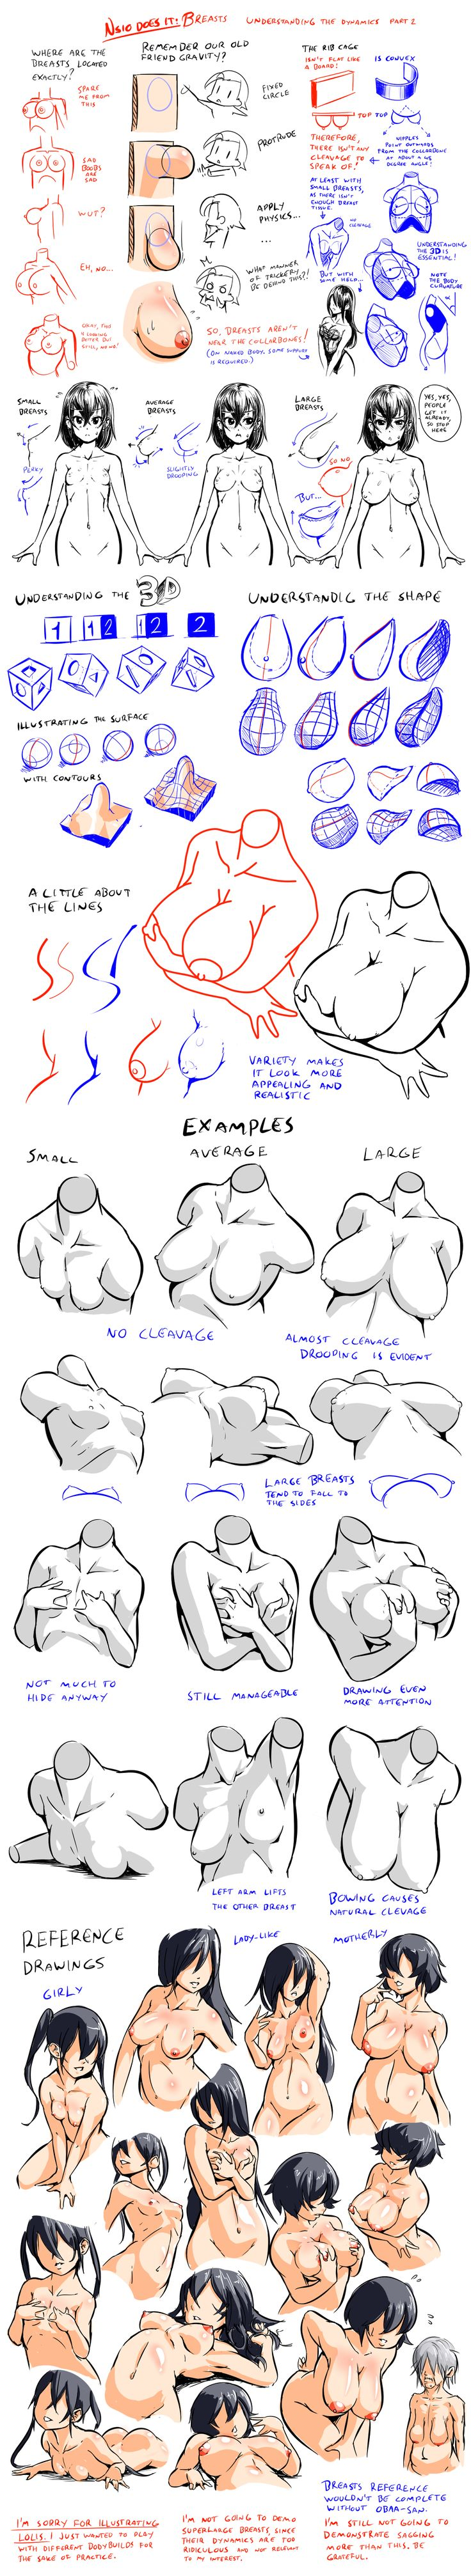 Breasts - Understanding the Dynamics 2 by Nsio on deviantART